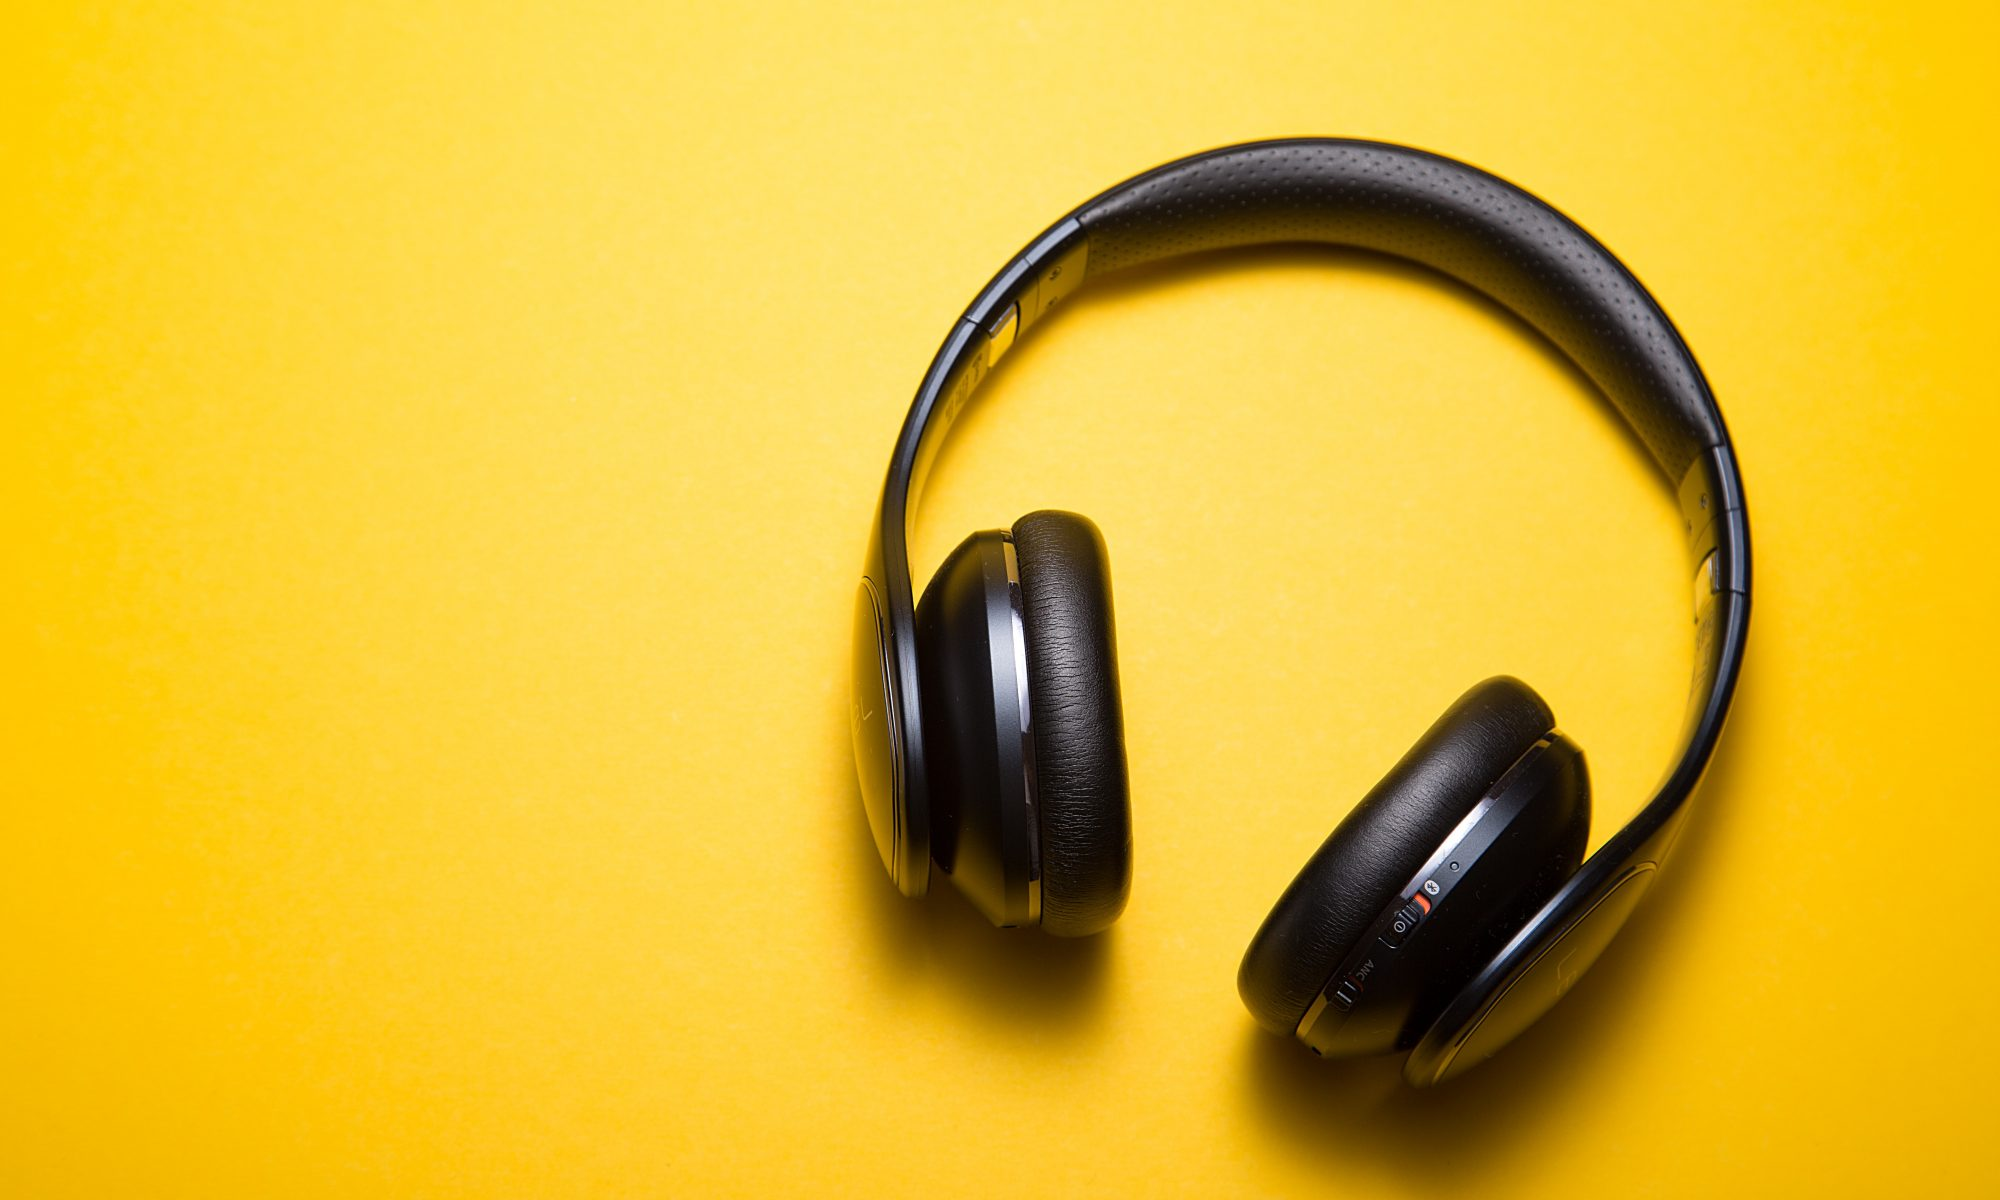 Headphones on a yellow background